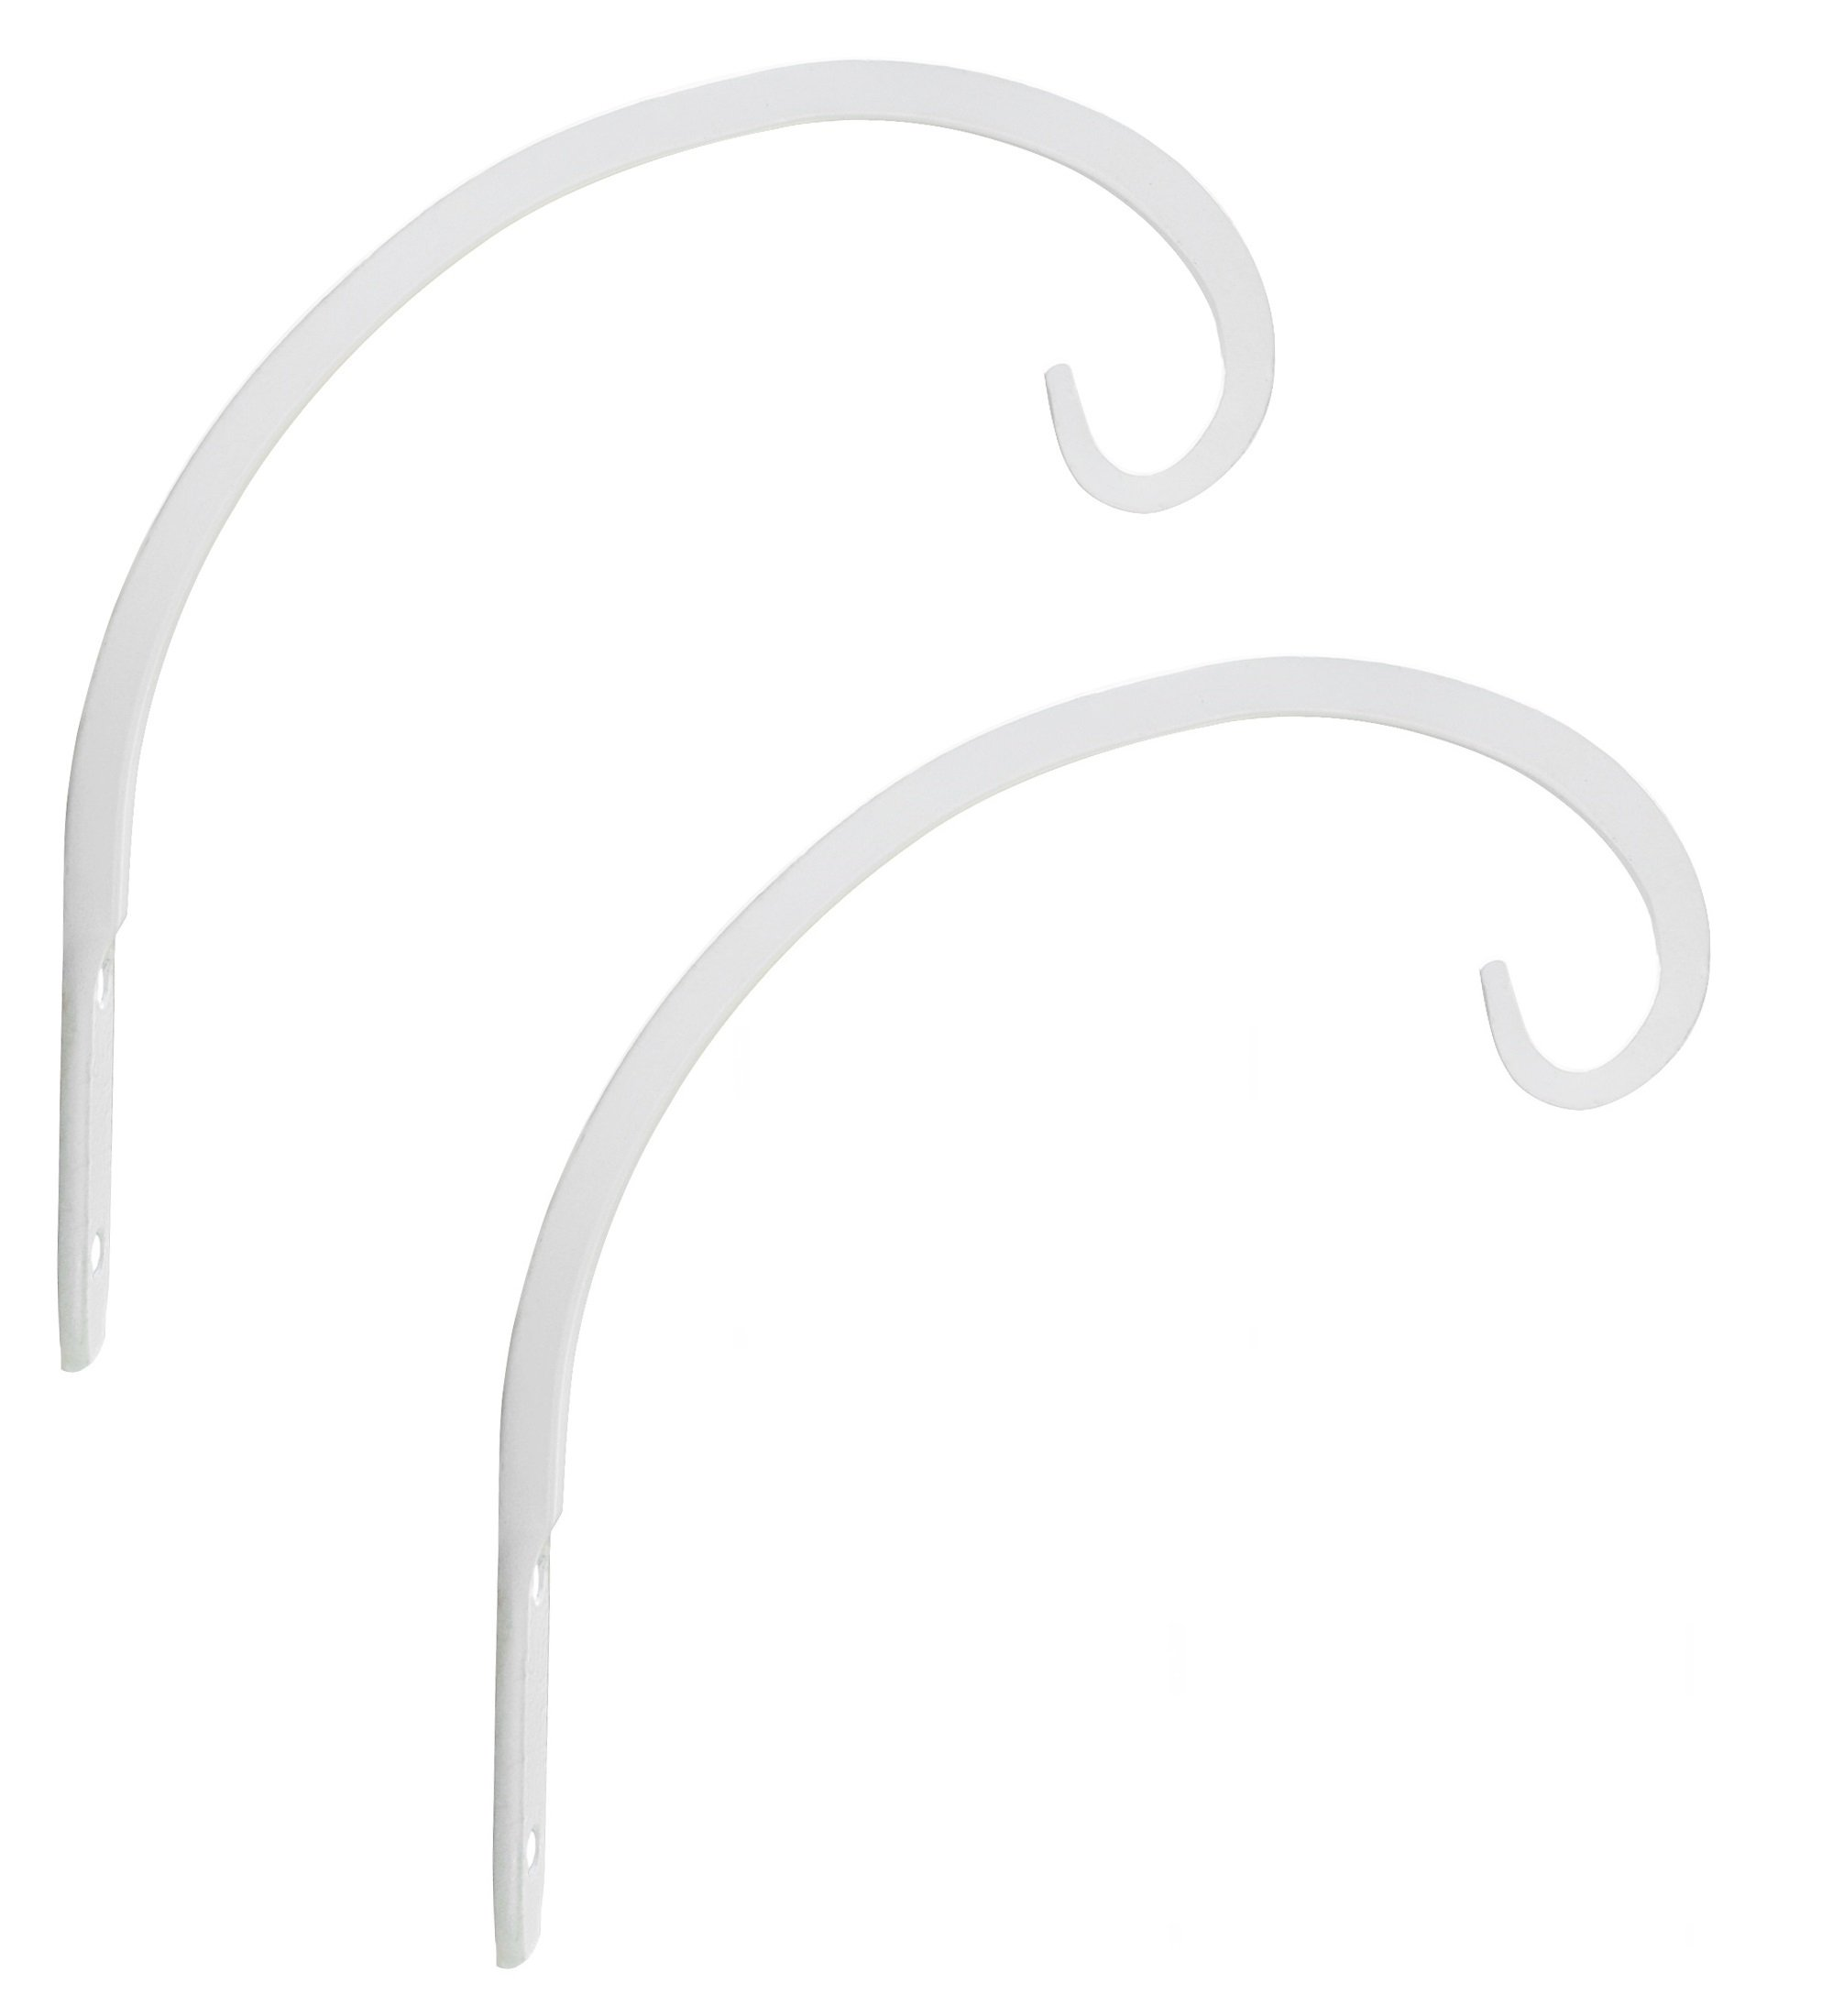 GrayBunny GB-6864B Hand Forged Curved Hook, 8.5 Inch, White, 2-Pack, For Bird Feeders, Planters, Lanterns, Wind Chimes, As Wall Brackets and More!